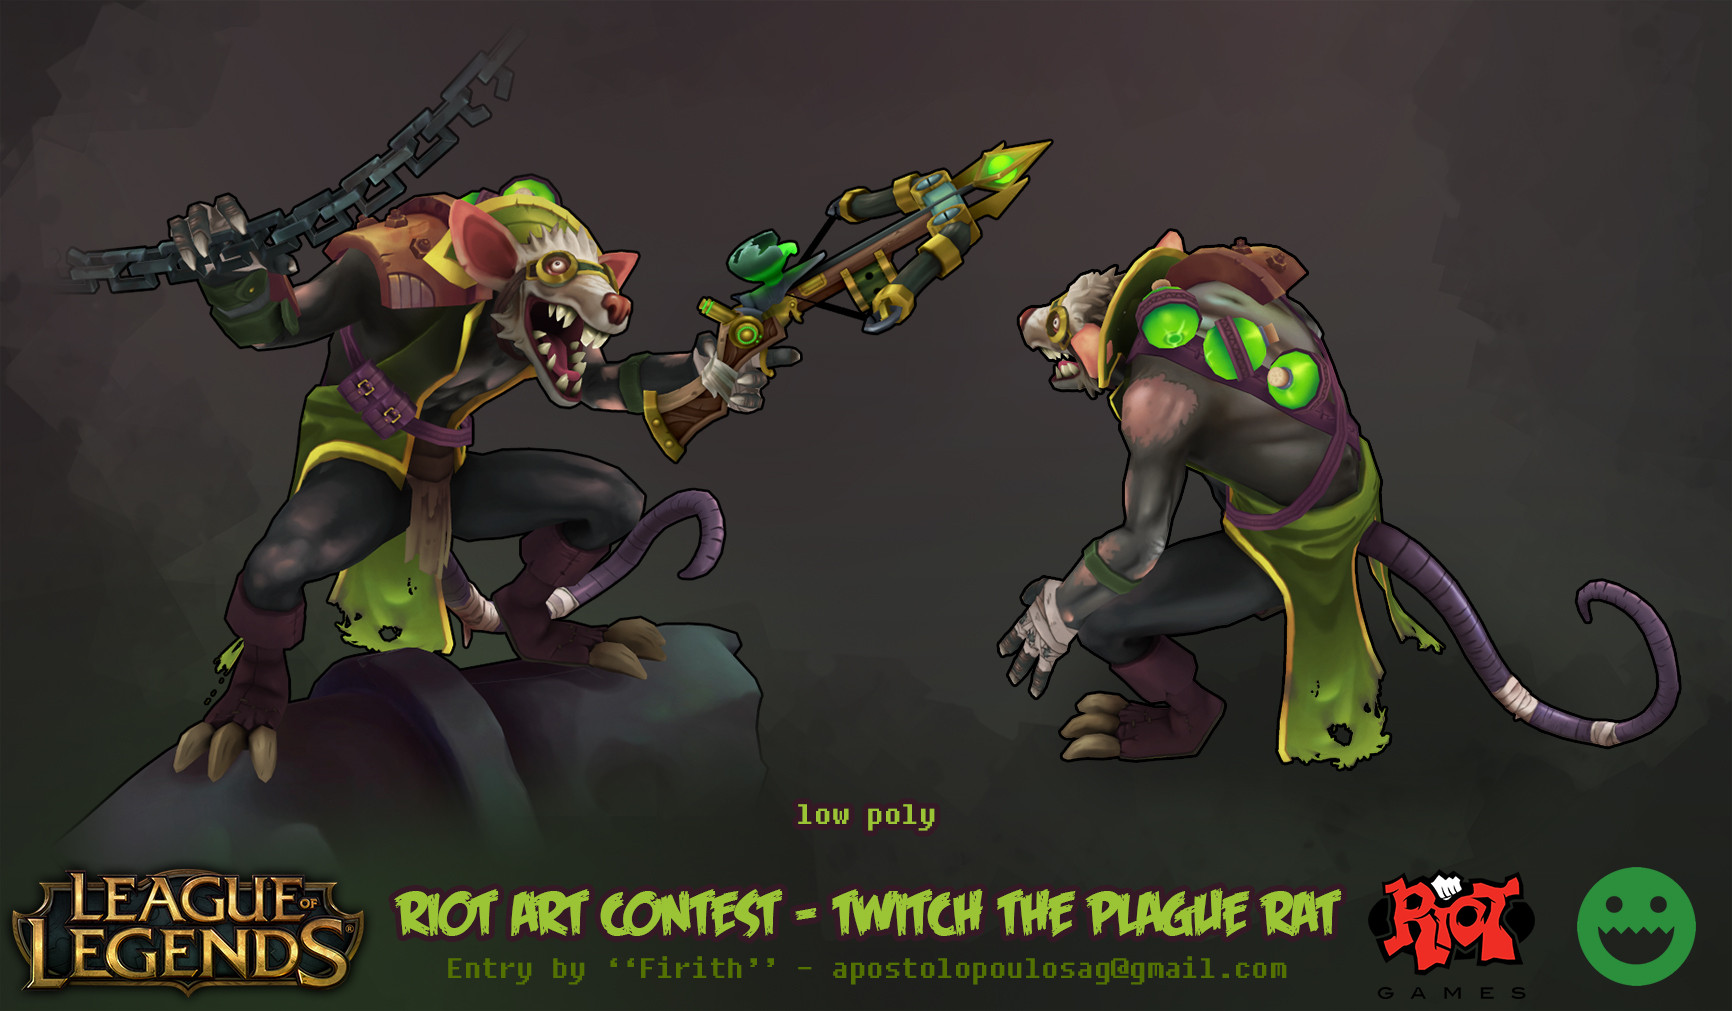 Thread: LoL & Polycount Contest - Twitch the Plague Rat